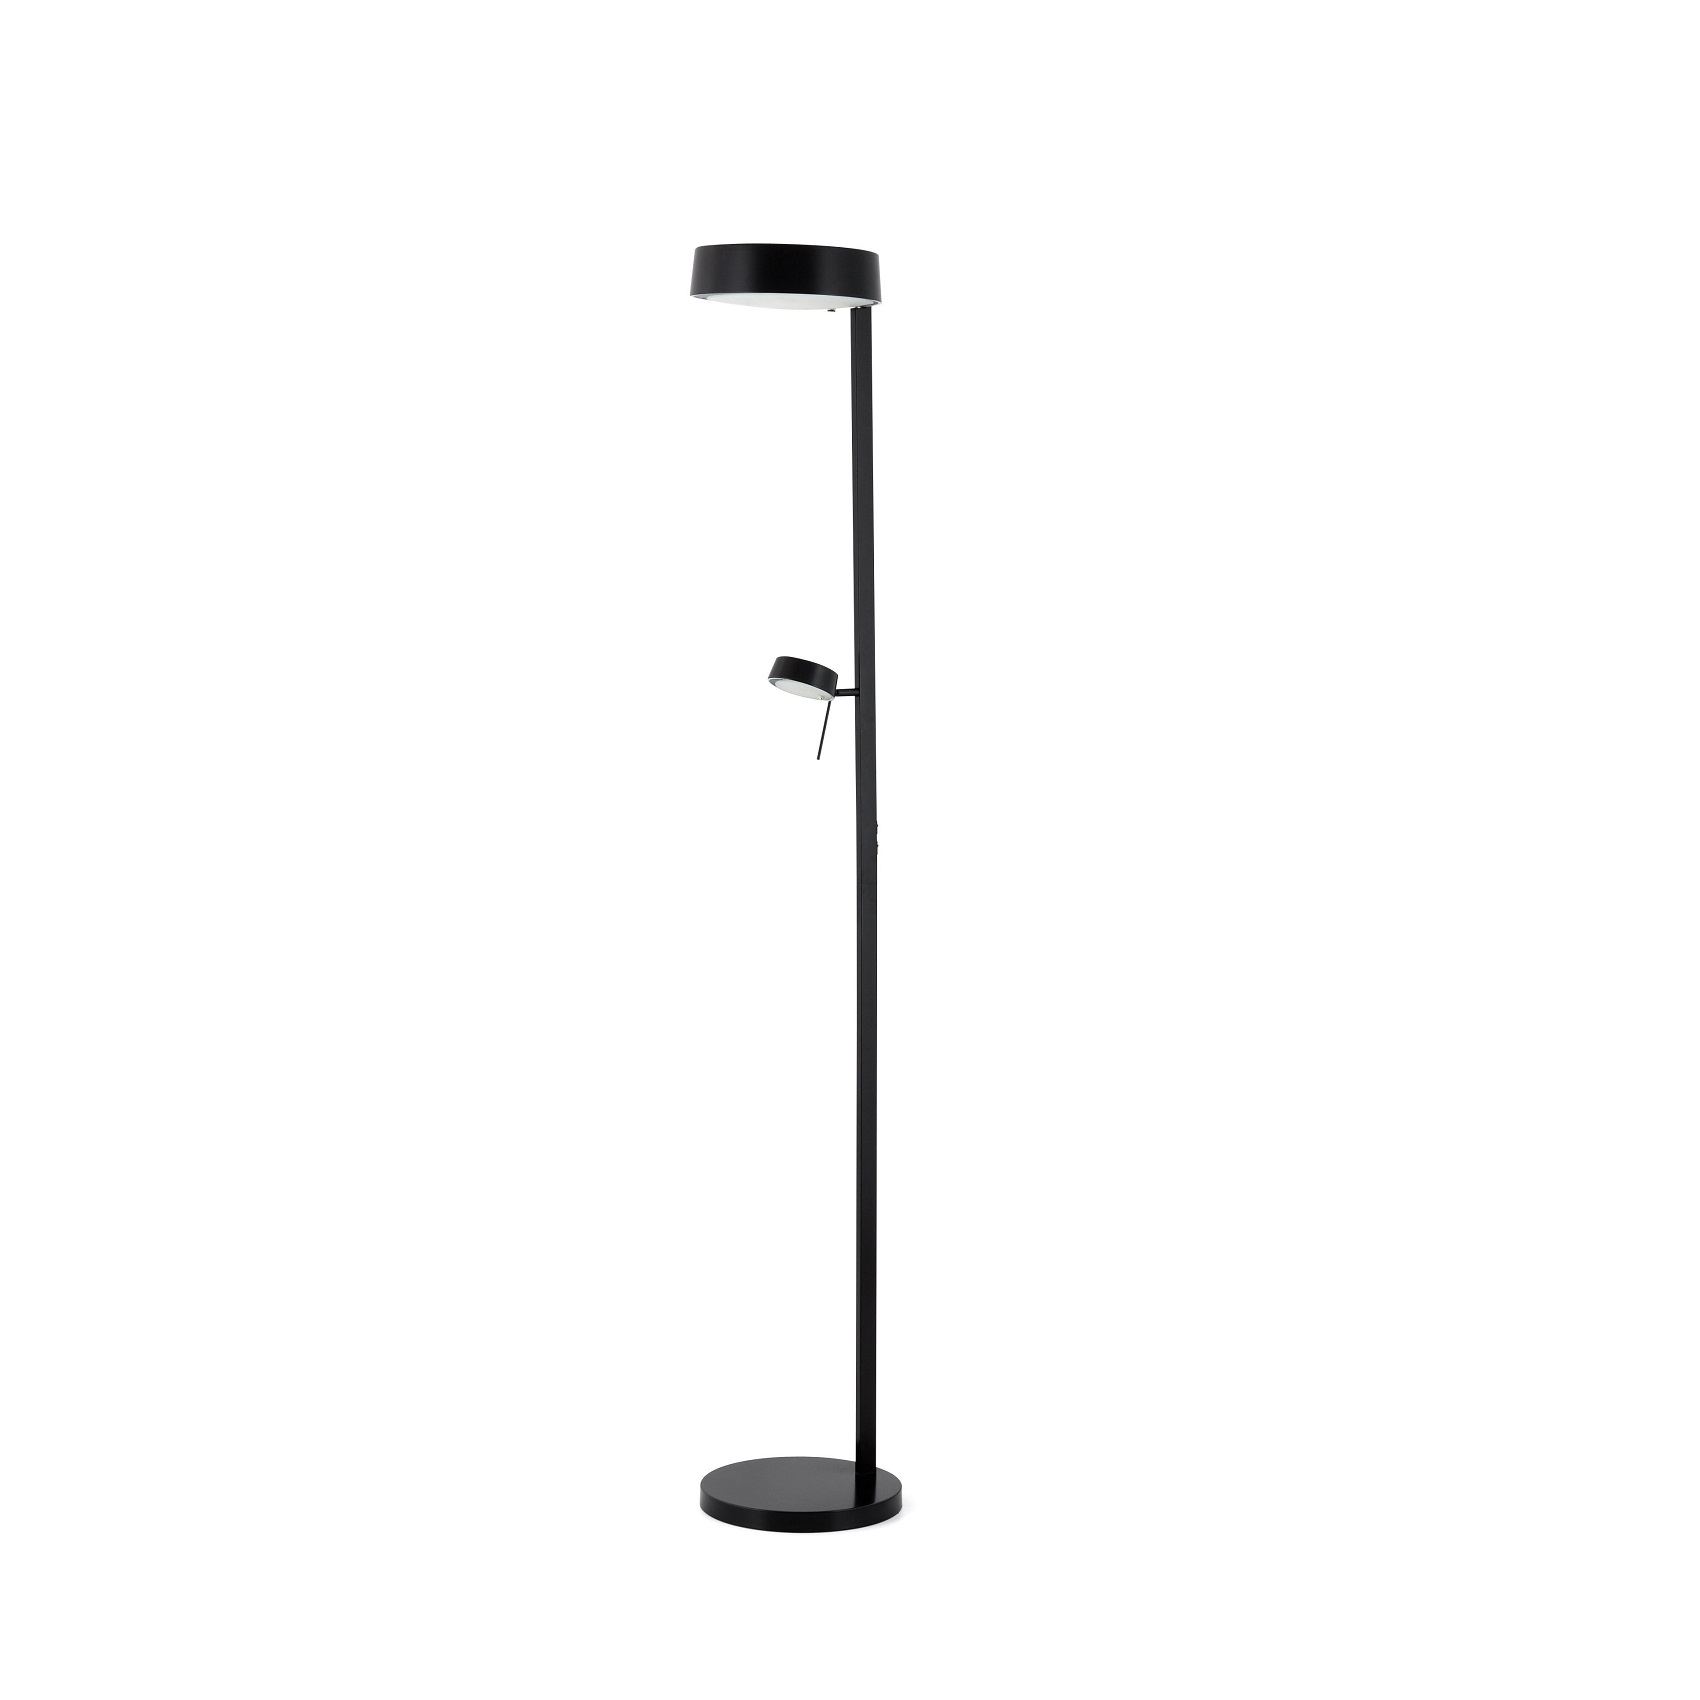 Lampadaire design int rieur nexo faro noir for Lampadaire interieur design